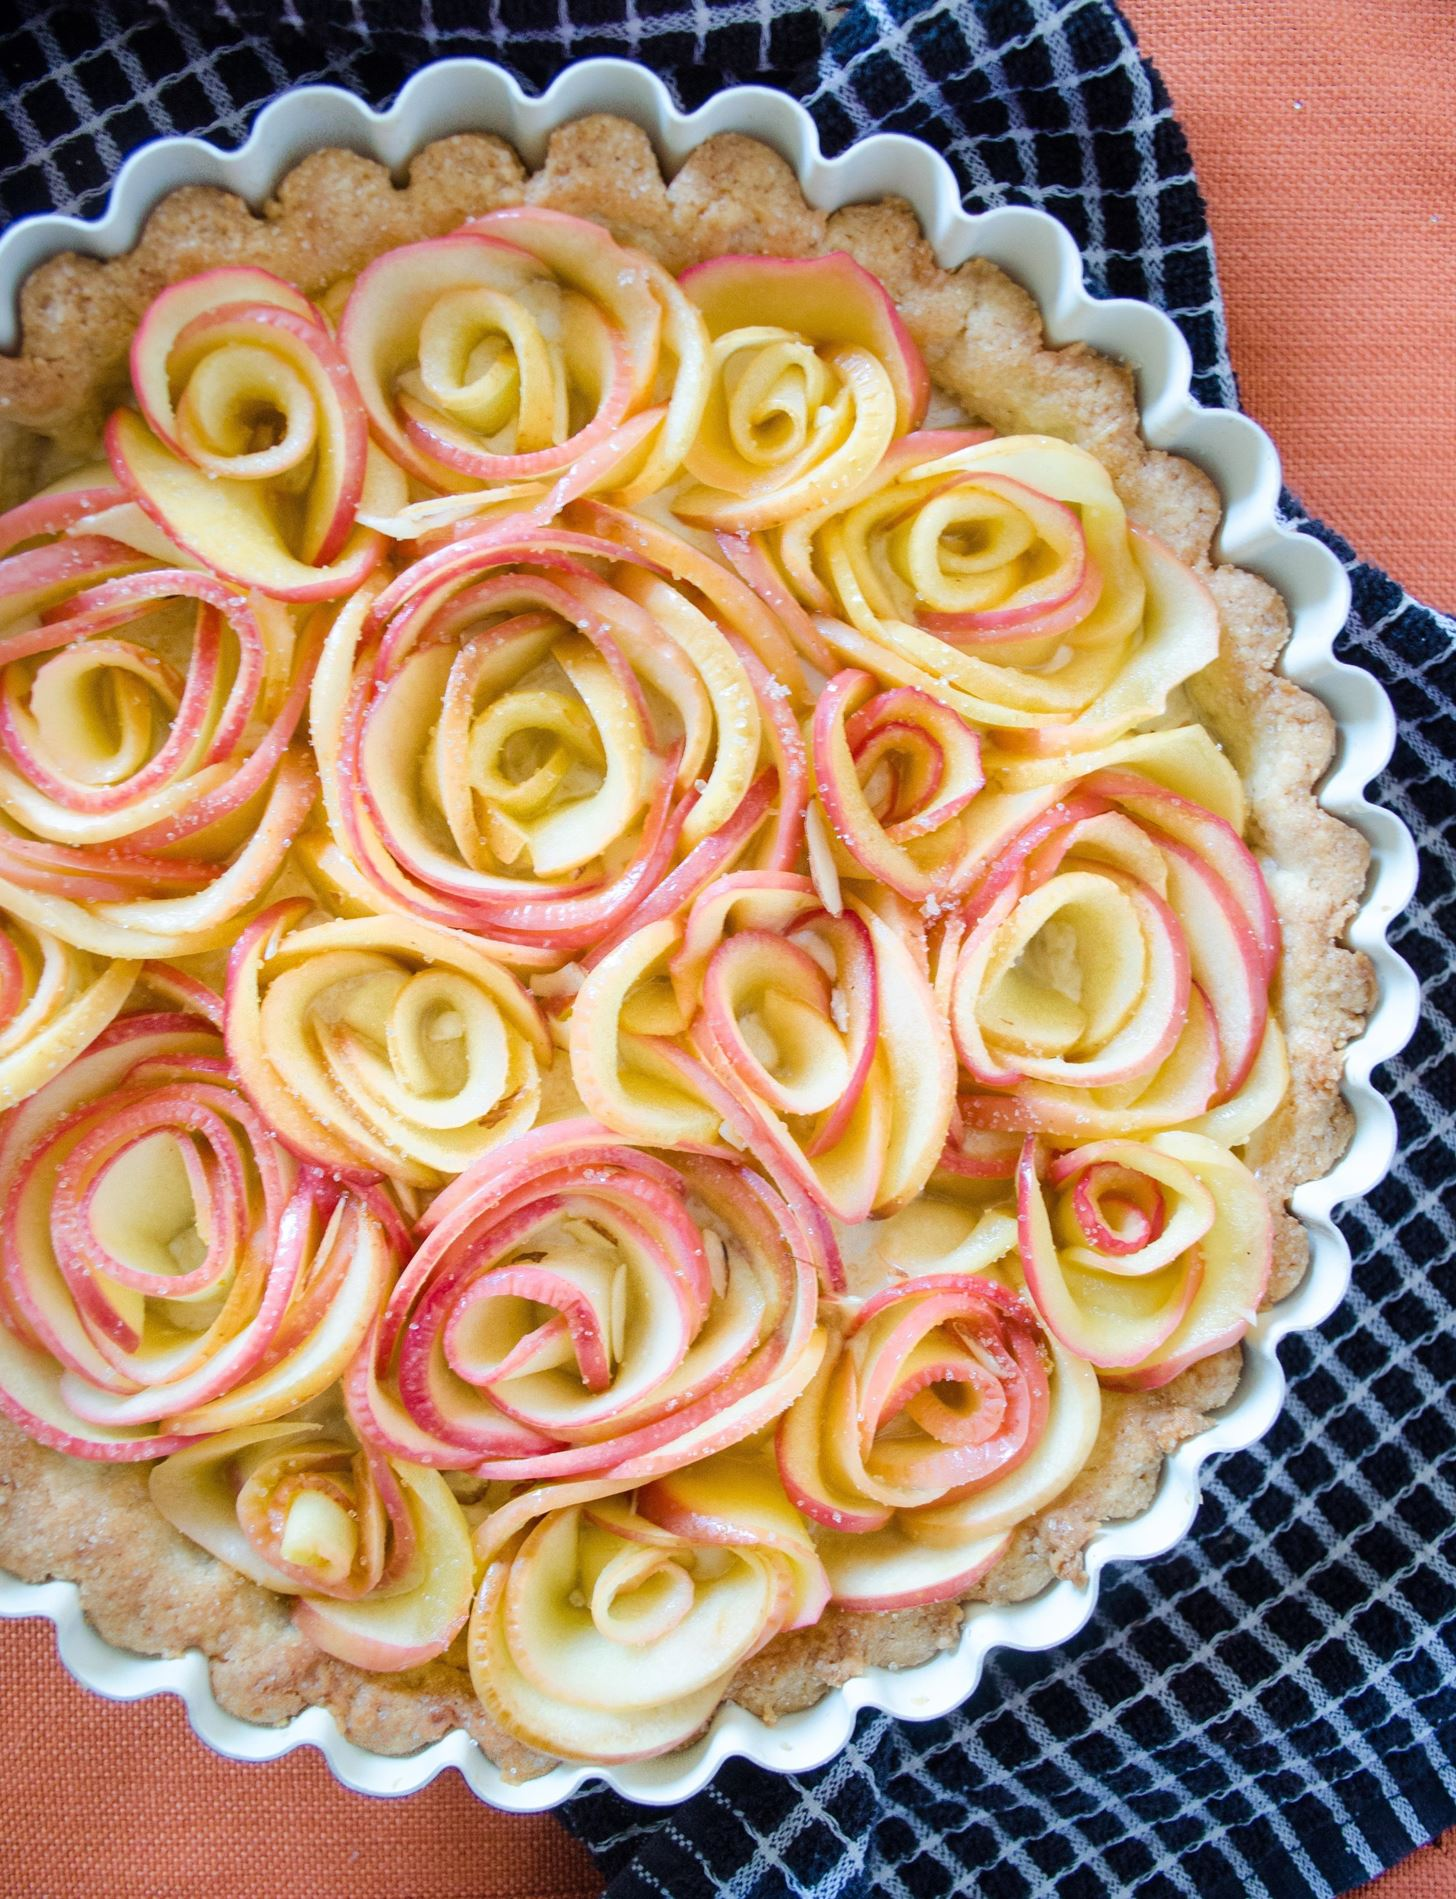 Apple Roses Are the Classiest Way to Make a Fruit Tart